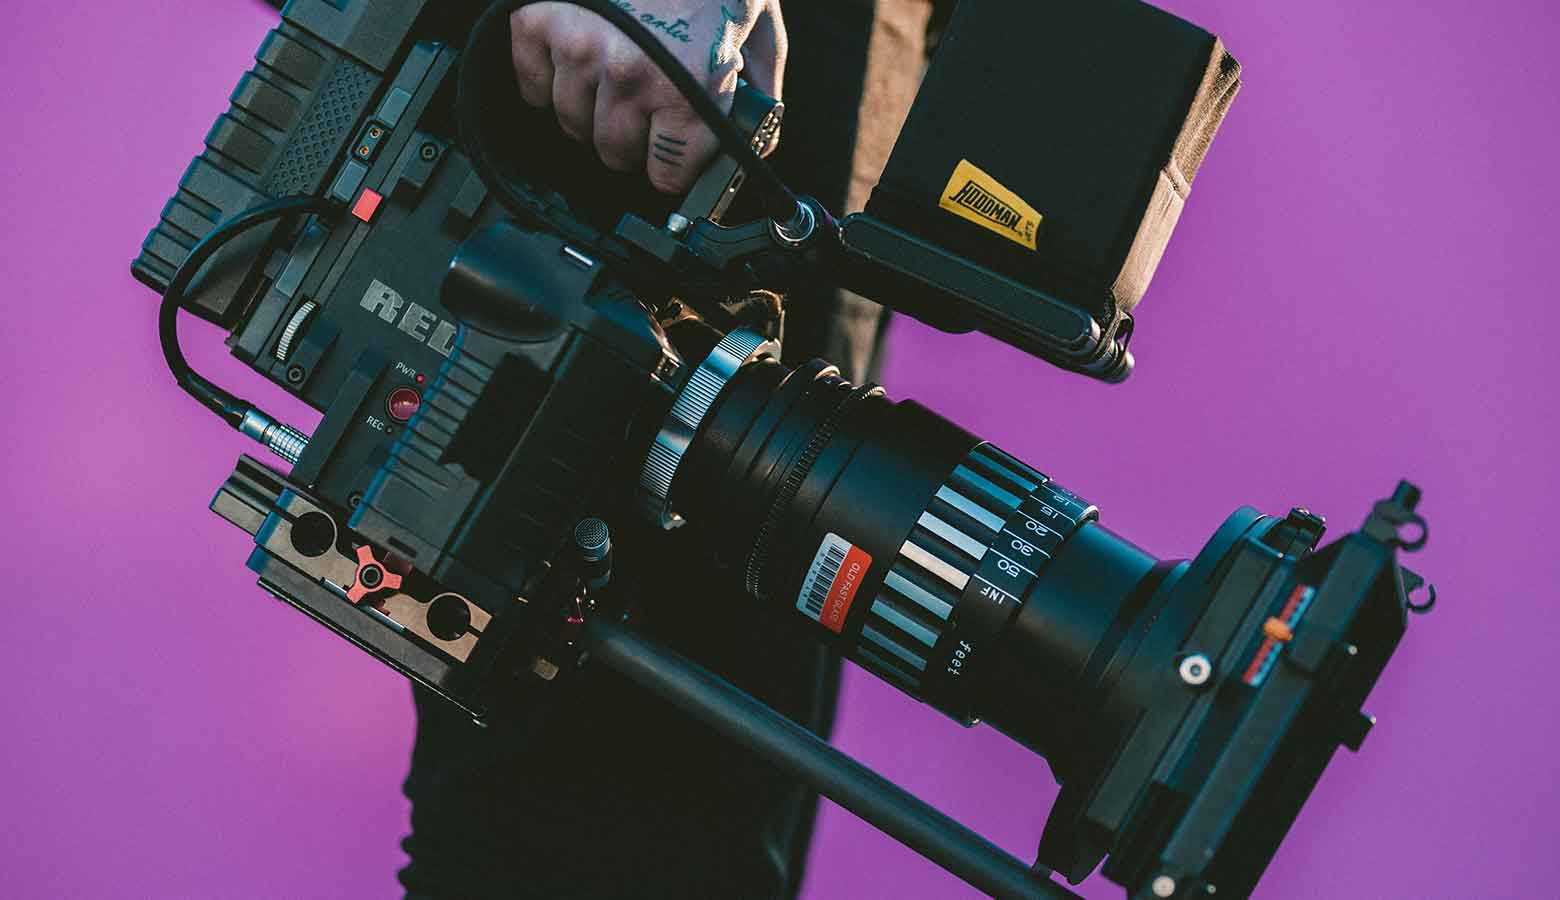 Image is of a video camera